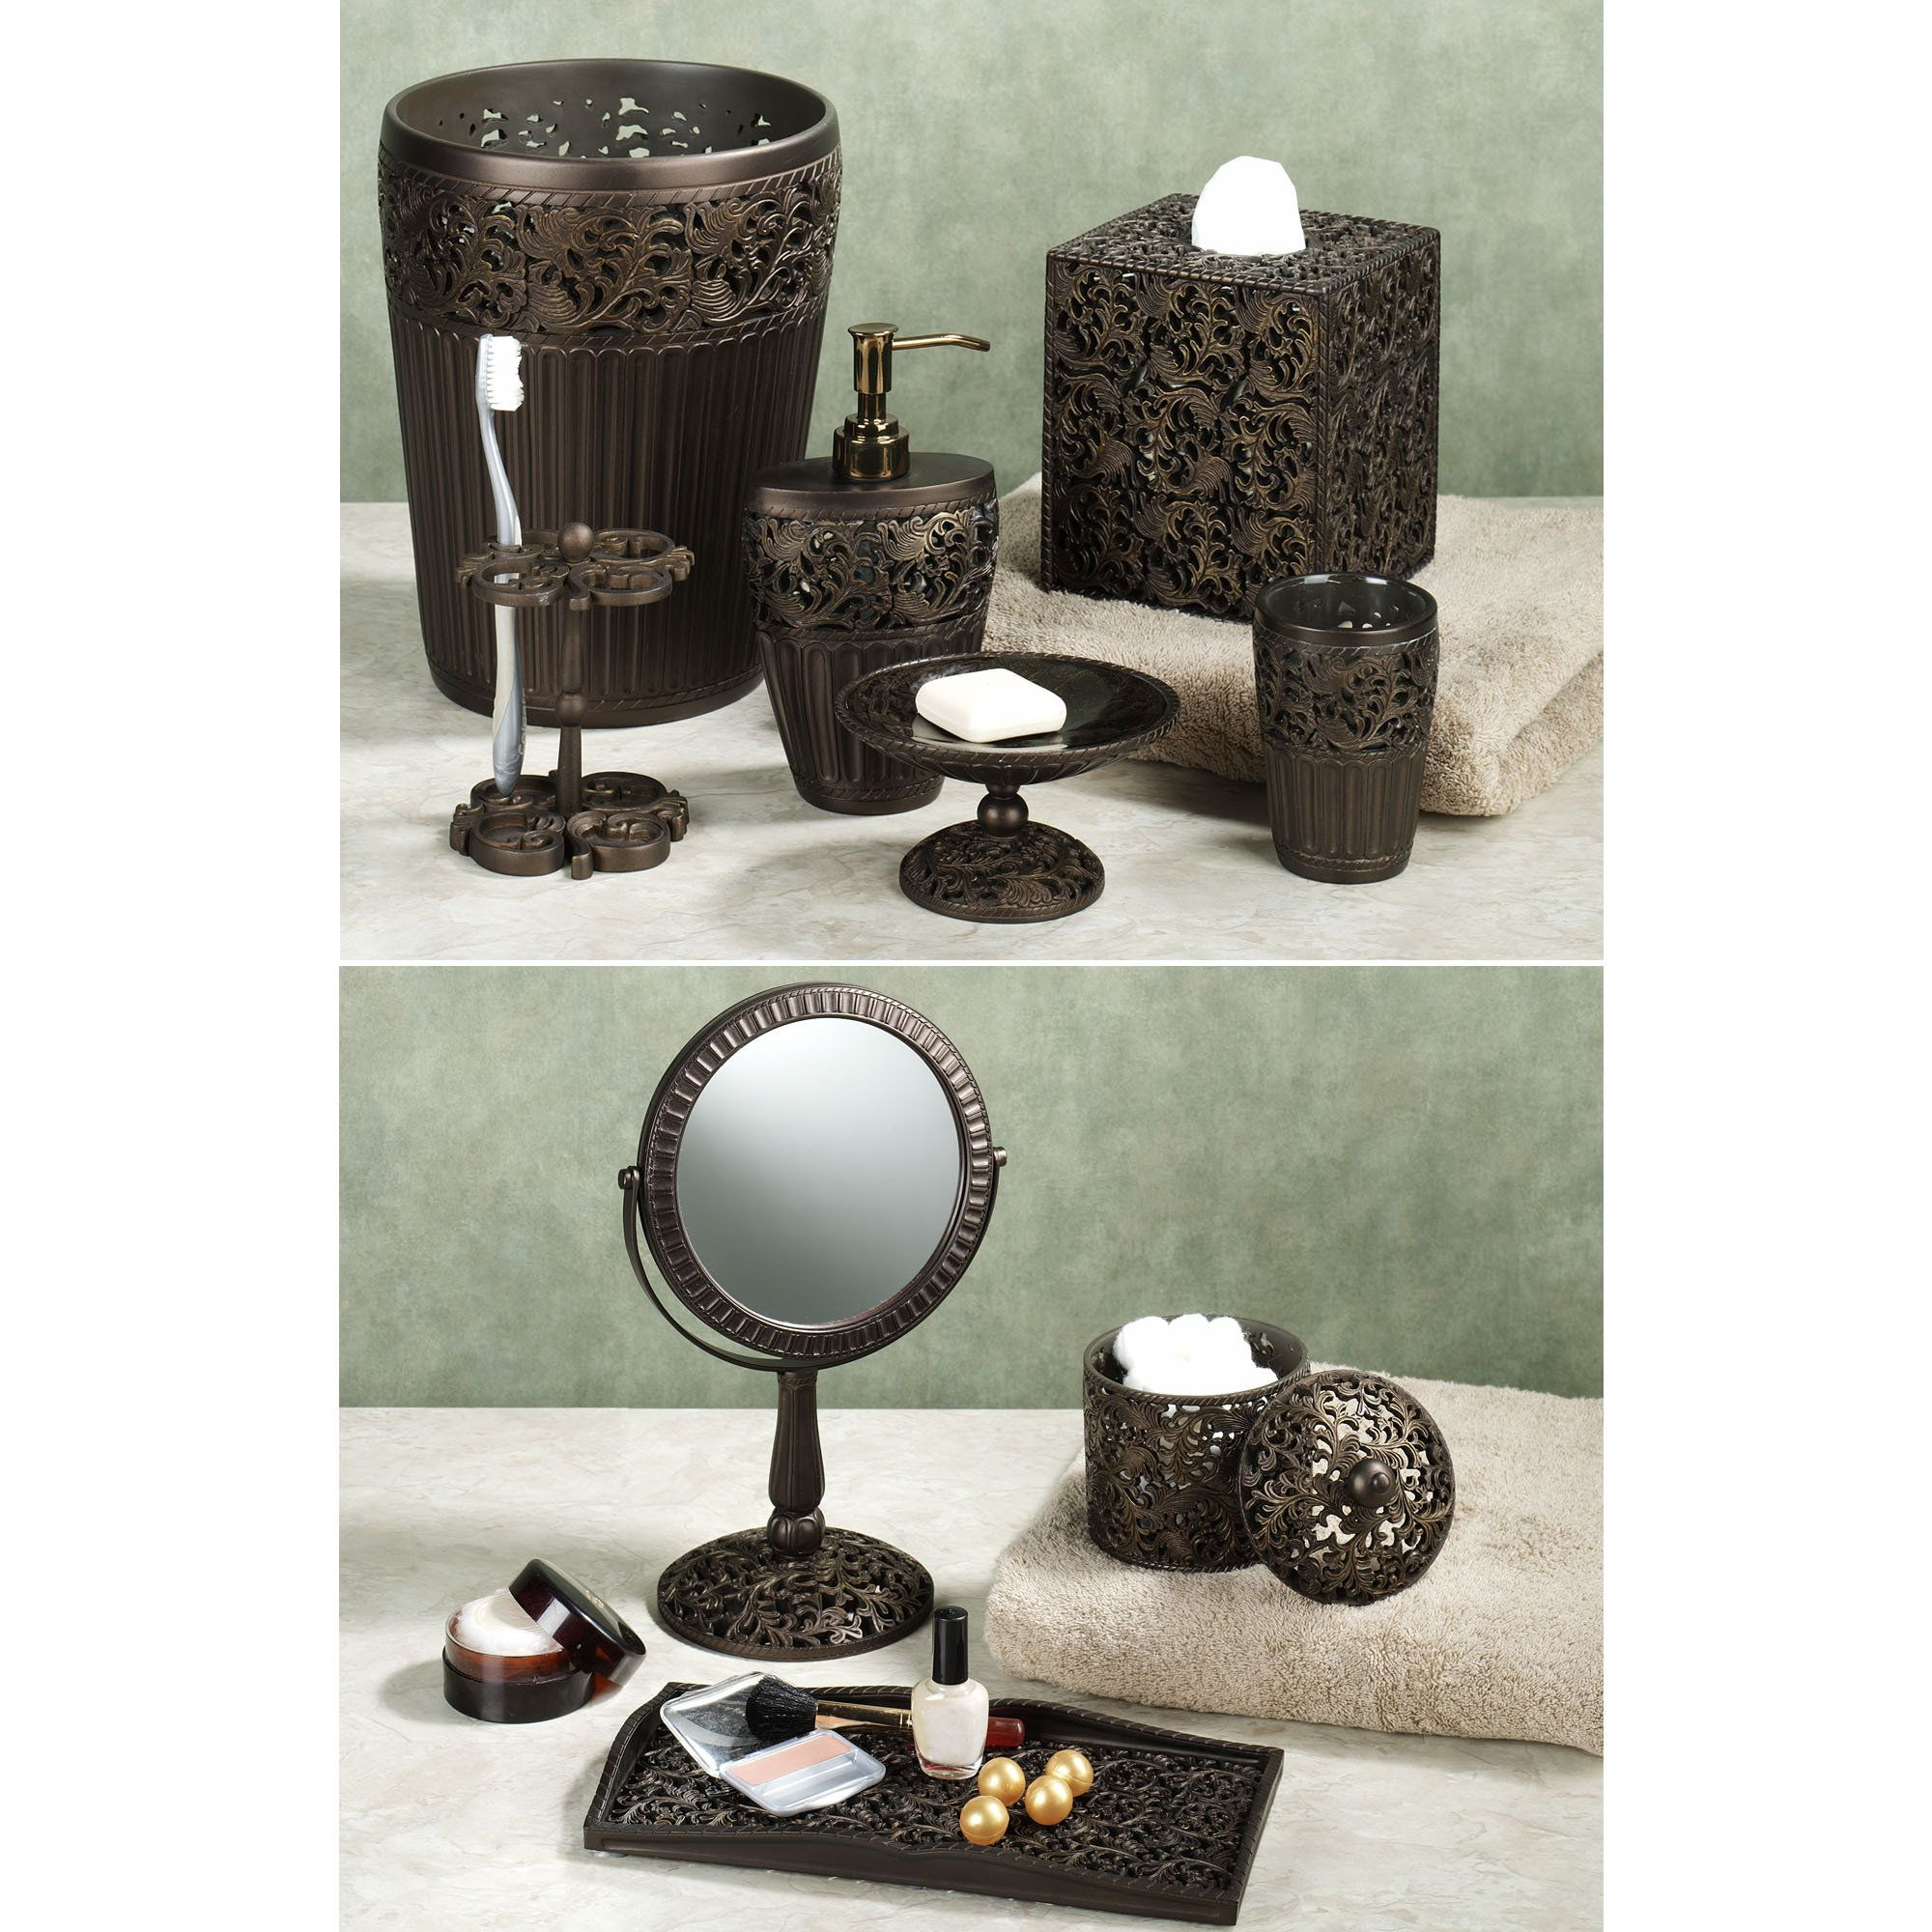 Marrakesh Bathroom Accessories Bath Accessories